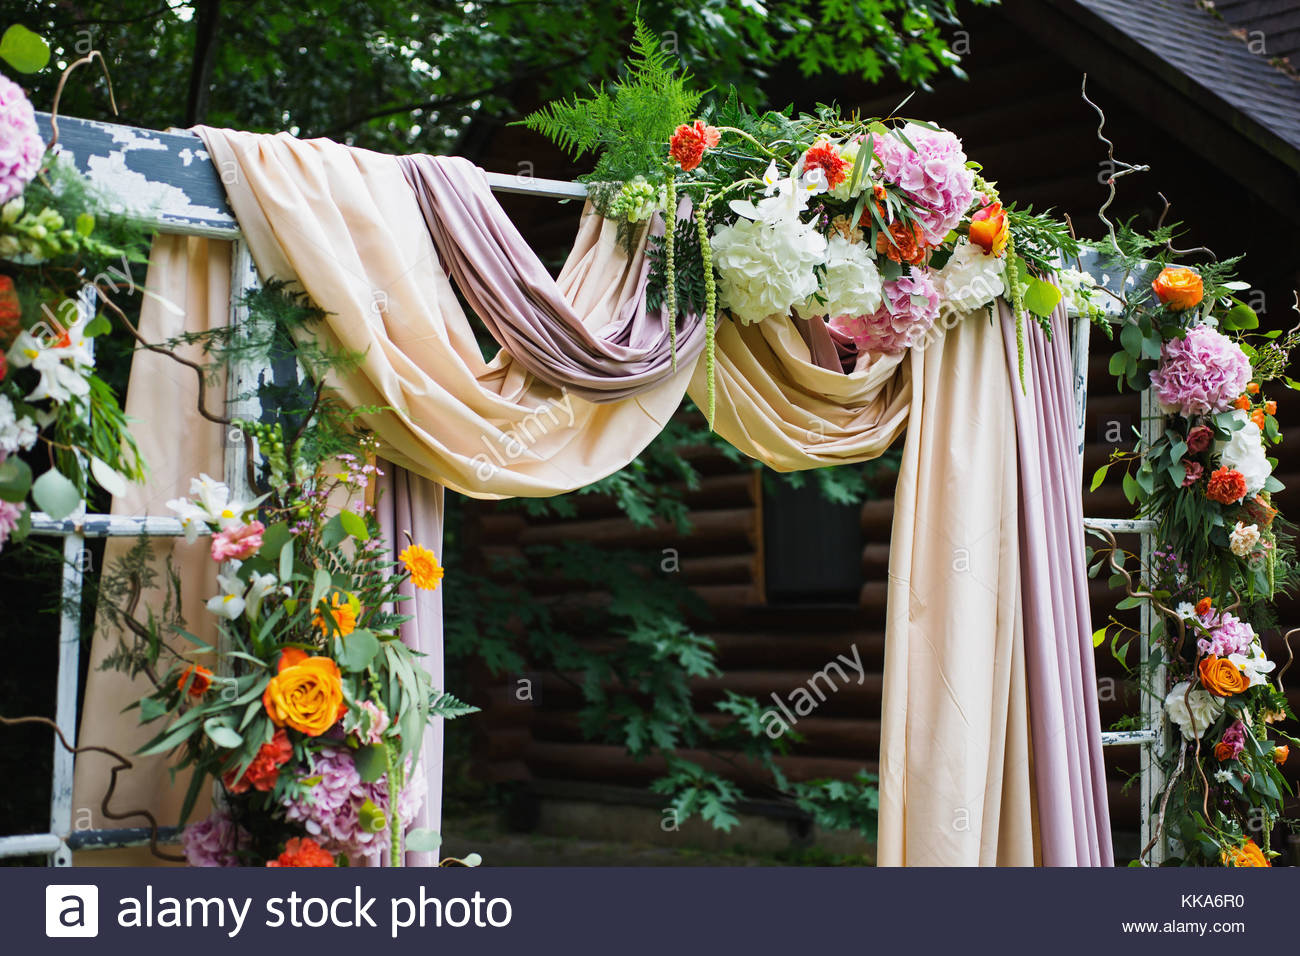 Beautiful Wedding Ceremony Outdoors Arch Made Of Cloth And White Pink Flowers On A Green Natural Background Old Doors Rustic Style